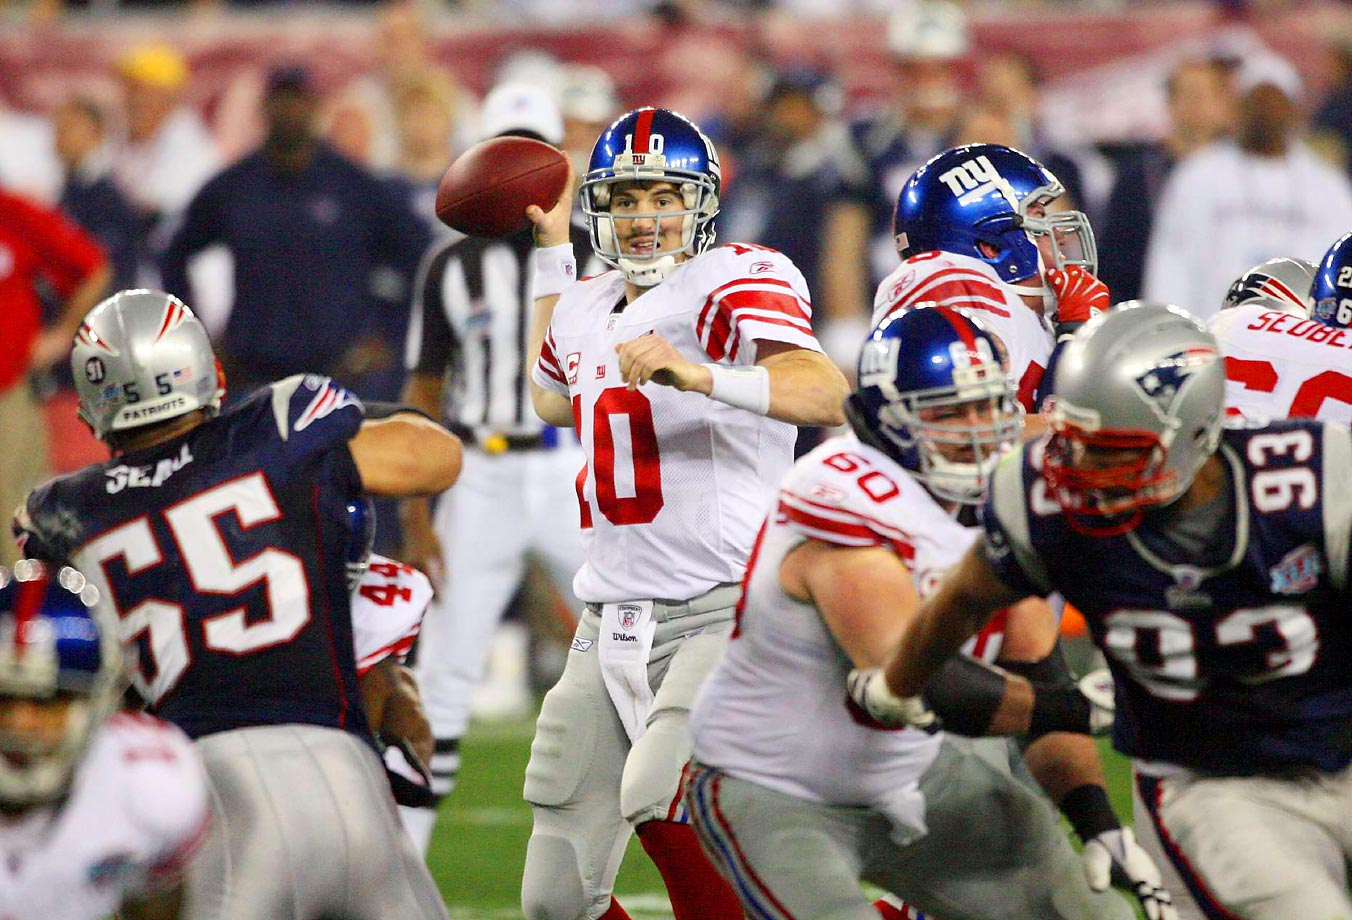 Eli Manning kept the Super Bowl trophy with the Manning family by helping the Giants knock off the previously undefeated New England Patriots.